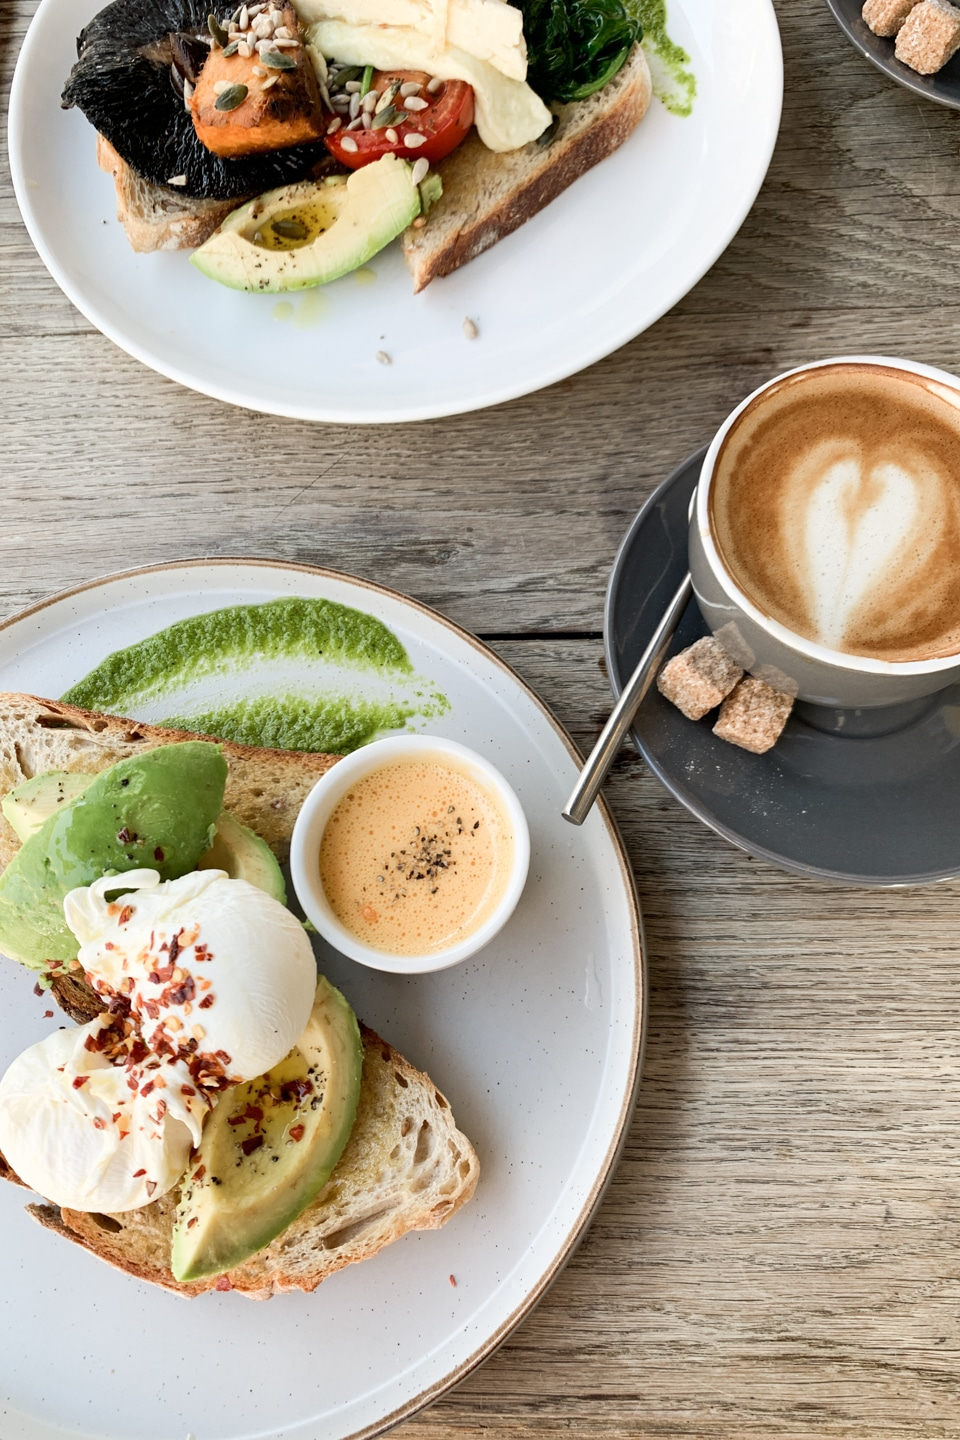 Flat-lay of brunch food prepared by Café Rust